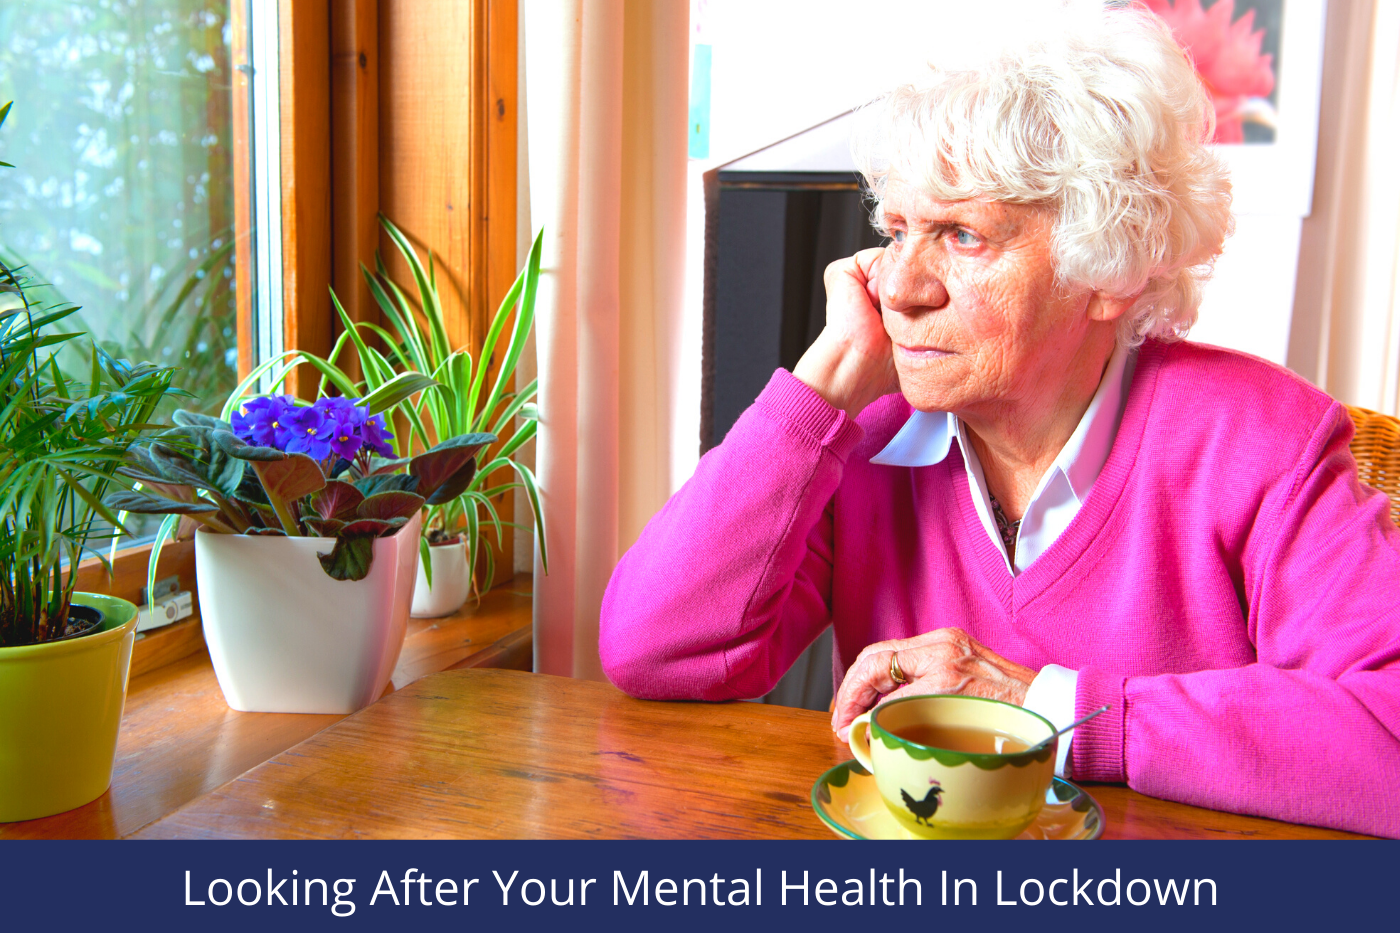 Looking After Your Mental Health In Lockdown